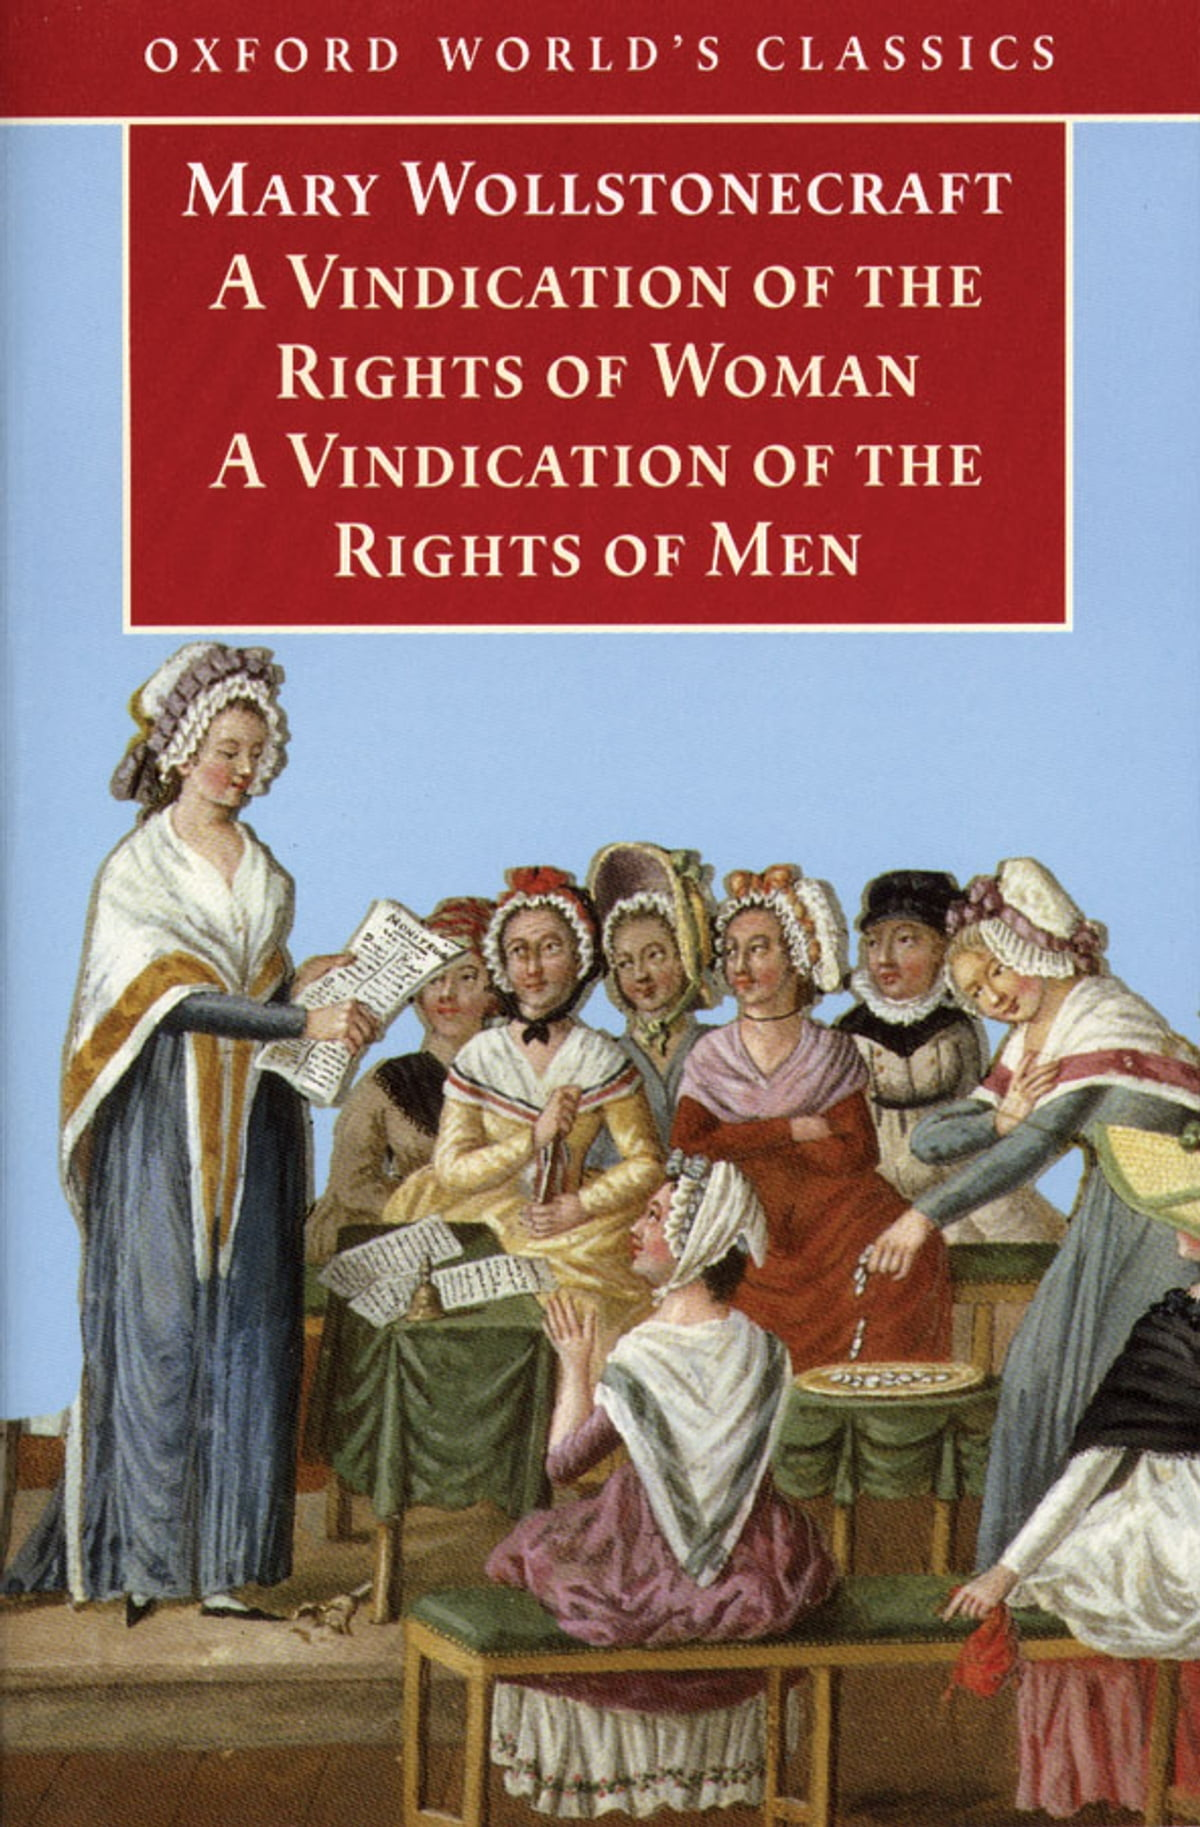 central ideas in a vindication of the rights of woman What central idea does wollstonecraft explicitly state in this passage a lack of education will not make women care only about household issues -men are not expected to share responsibility in raising children -women engage in vanity because they are denied equal rights.